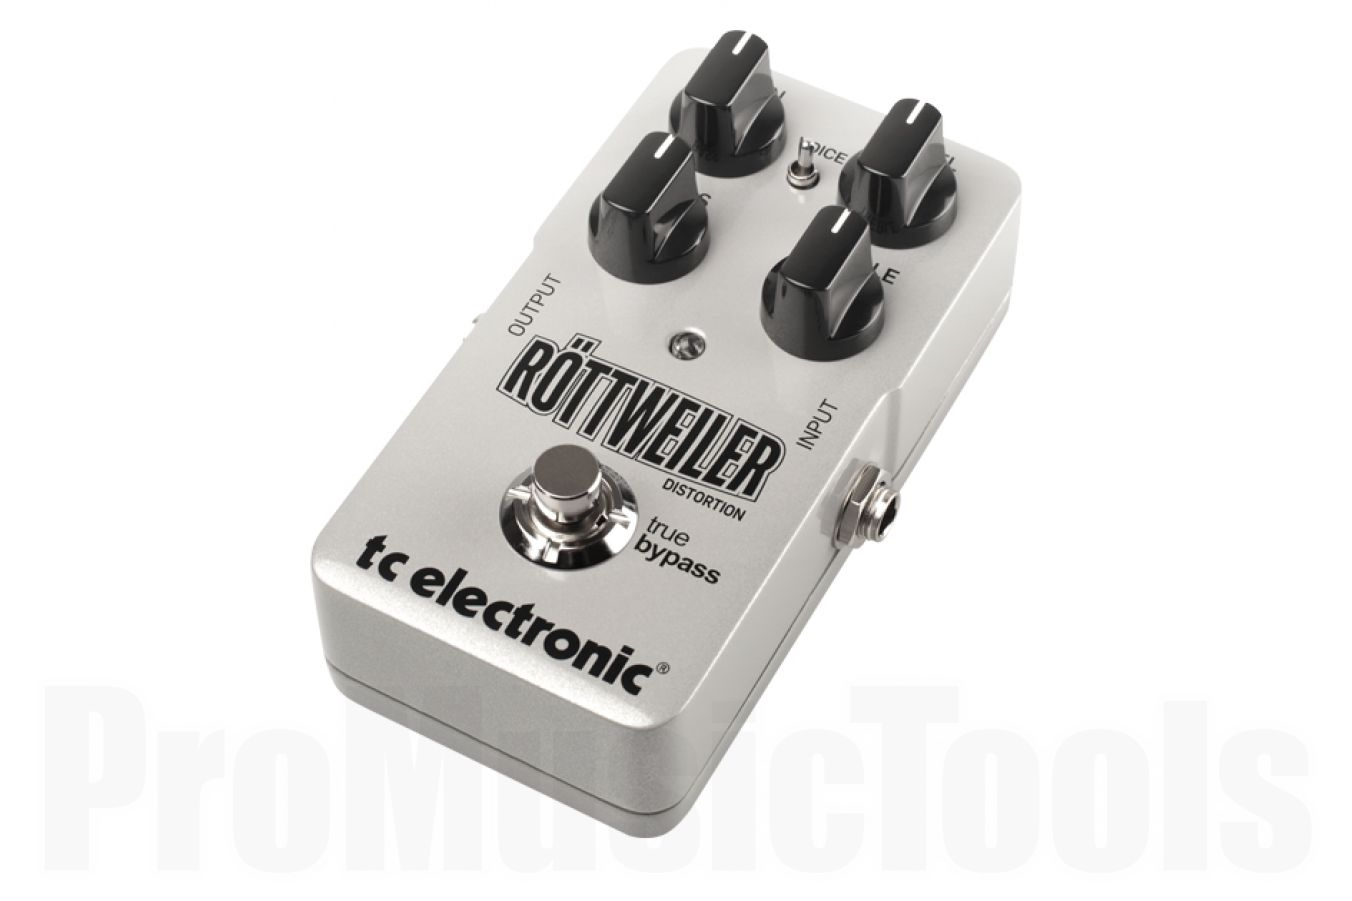 TC Electronic Röttweiler Distortion - b-stock (1x opened box)